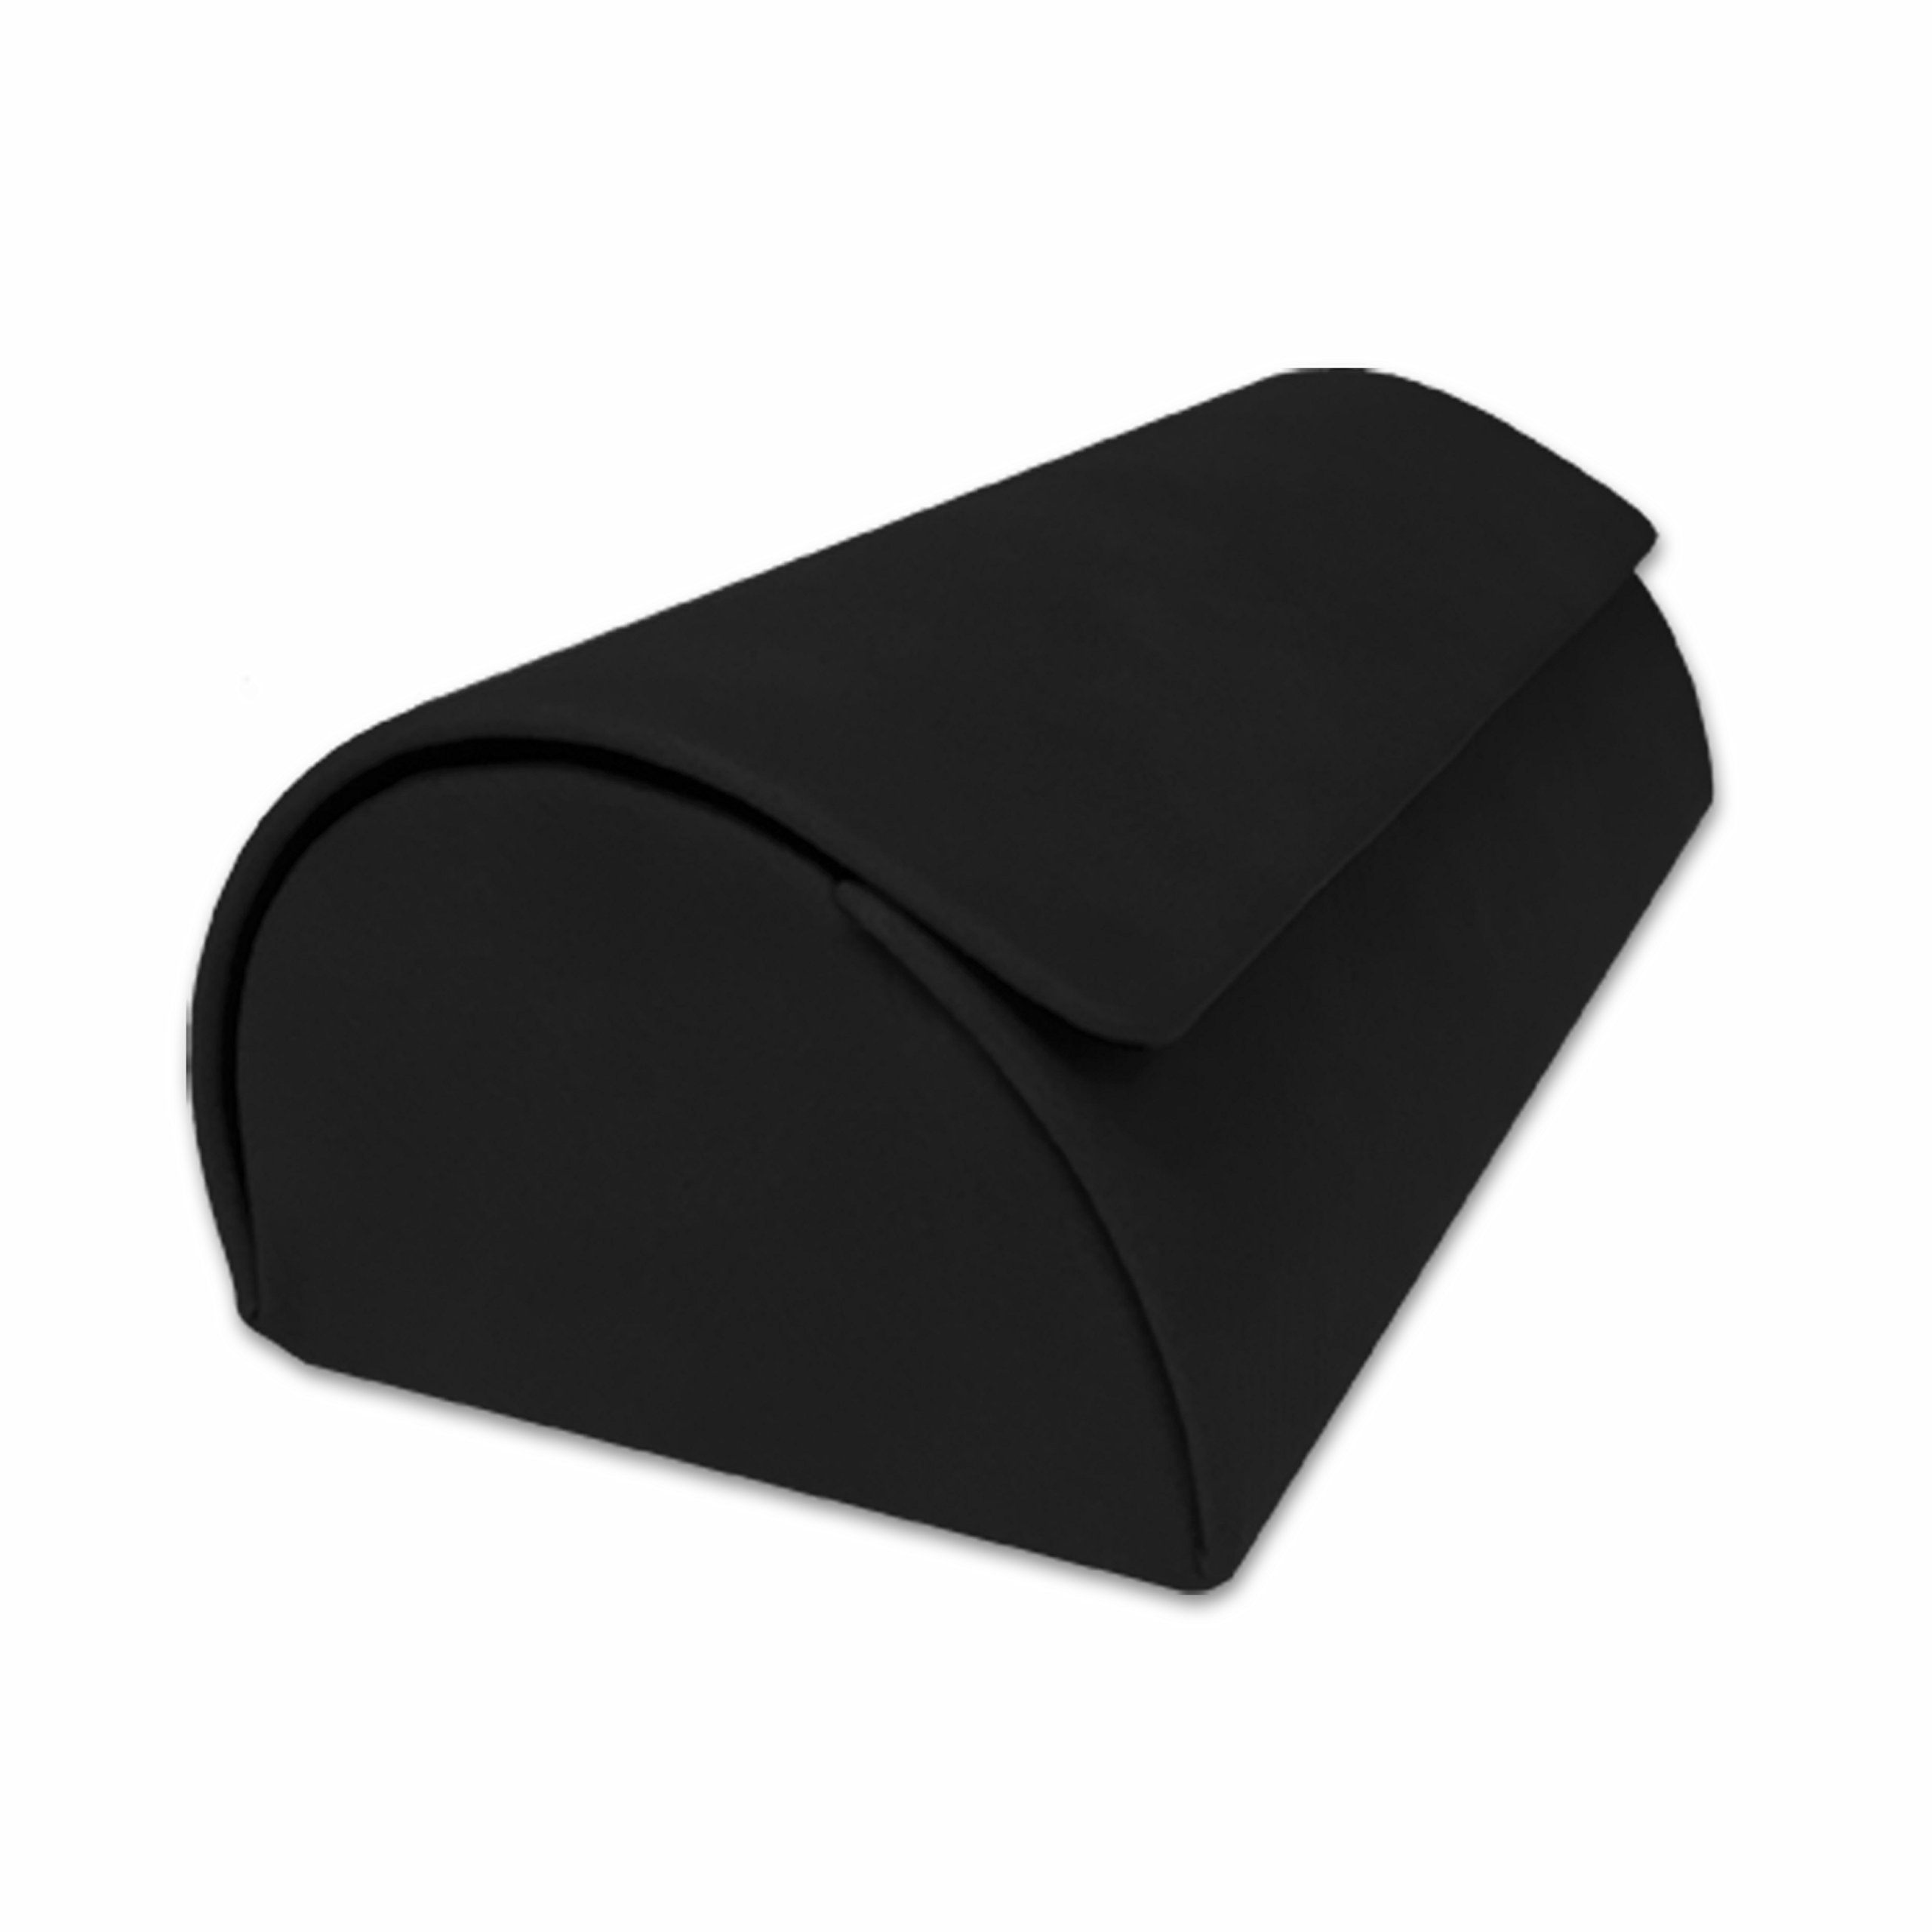 Sunglass Case, Sign Language I Love You, Personalized Engraving Included (Black) by SkunkWerkz (Image #2)